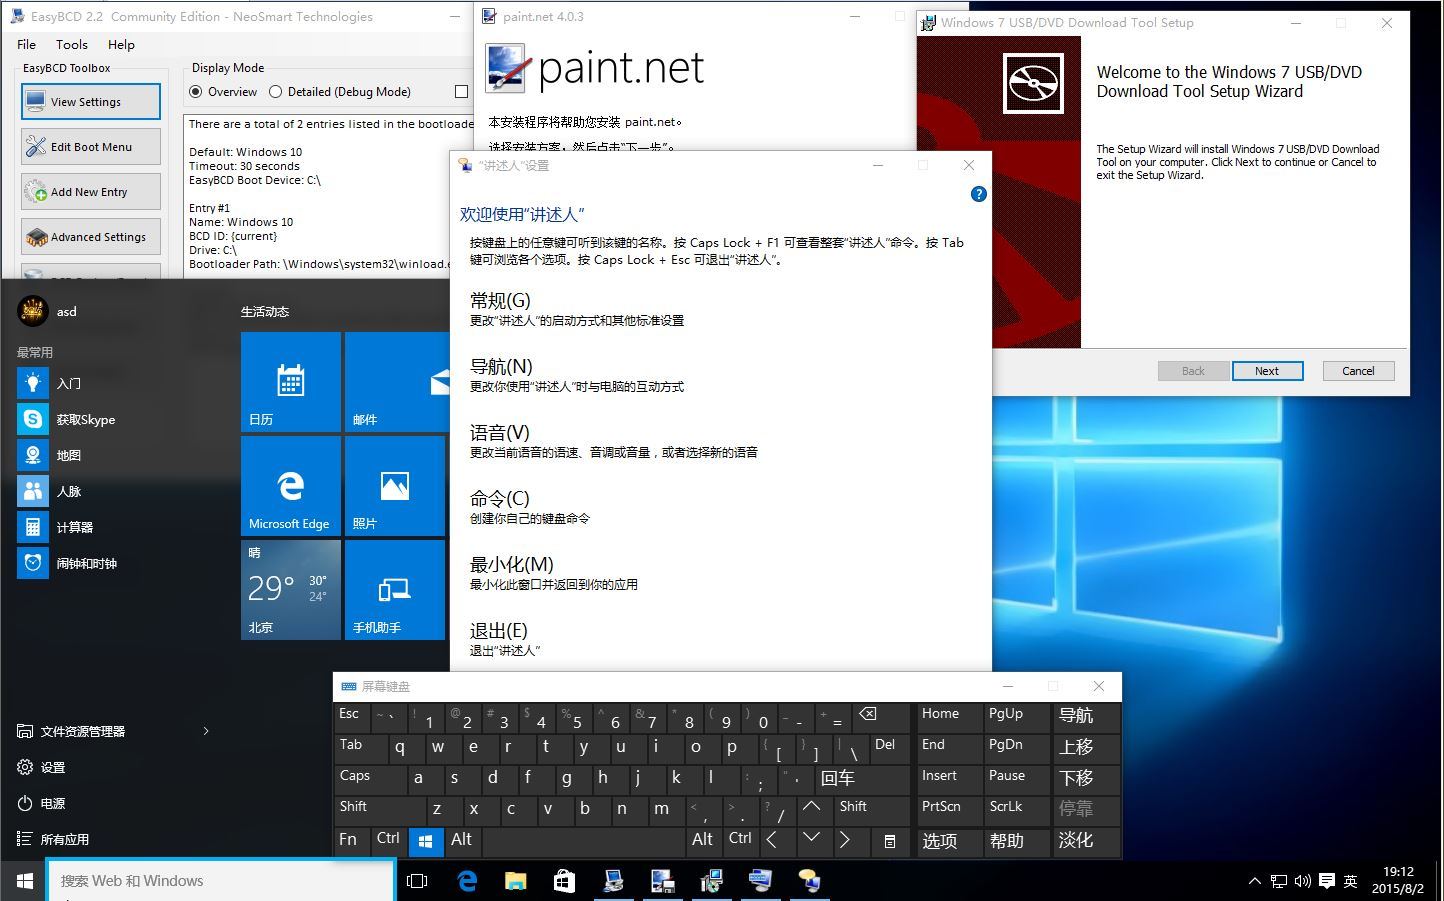 Windows 10 Pro 10240 Tablet PC2,Windows 10 Pro 10240.16393.150717-1719.th1_st1 x86-x64 CN Tablet PC FINAL